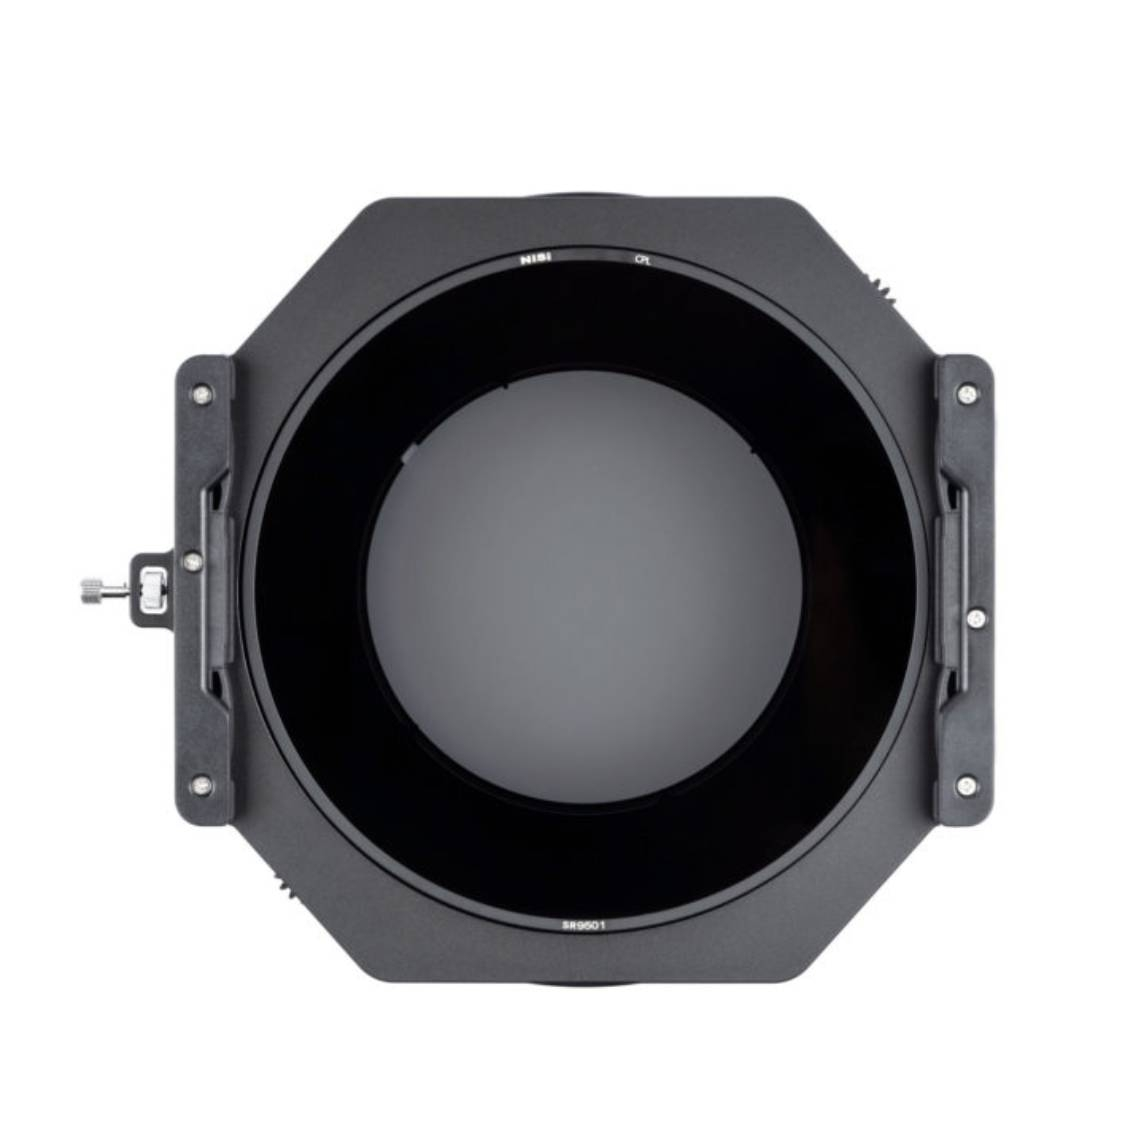 NiSi S6 150mm Filter Holder Kit with Pro CPL for Sigma 14-24mm f/2.8 DG DN Art (Sony E and Leica L)